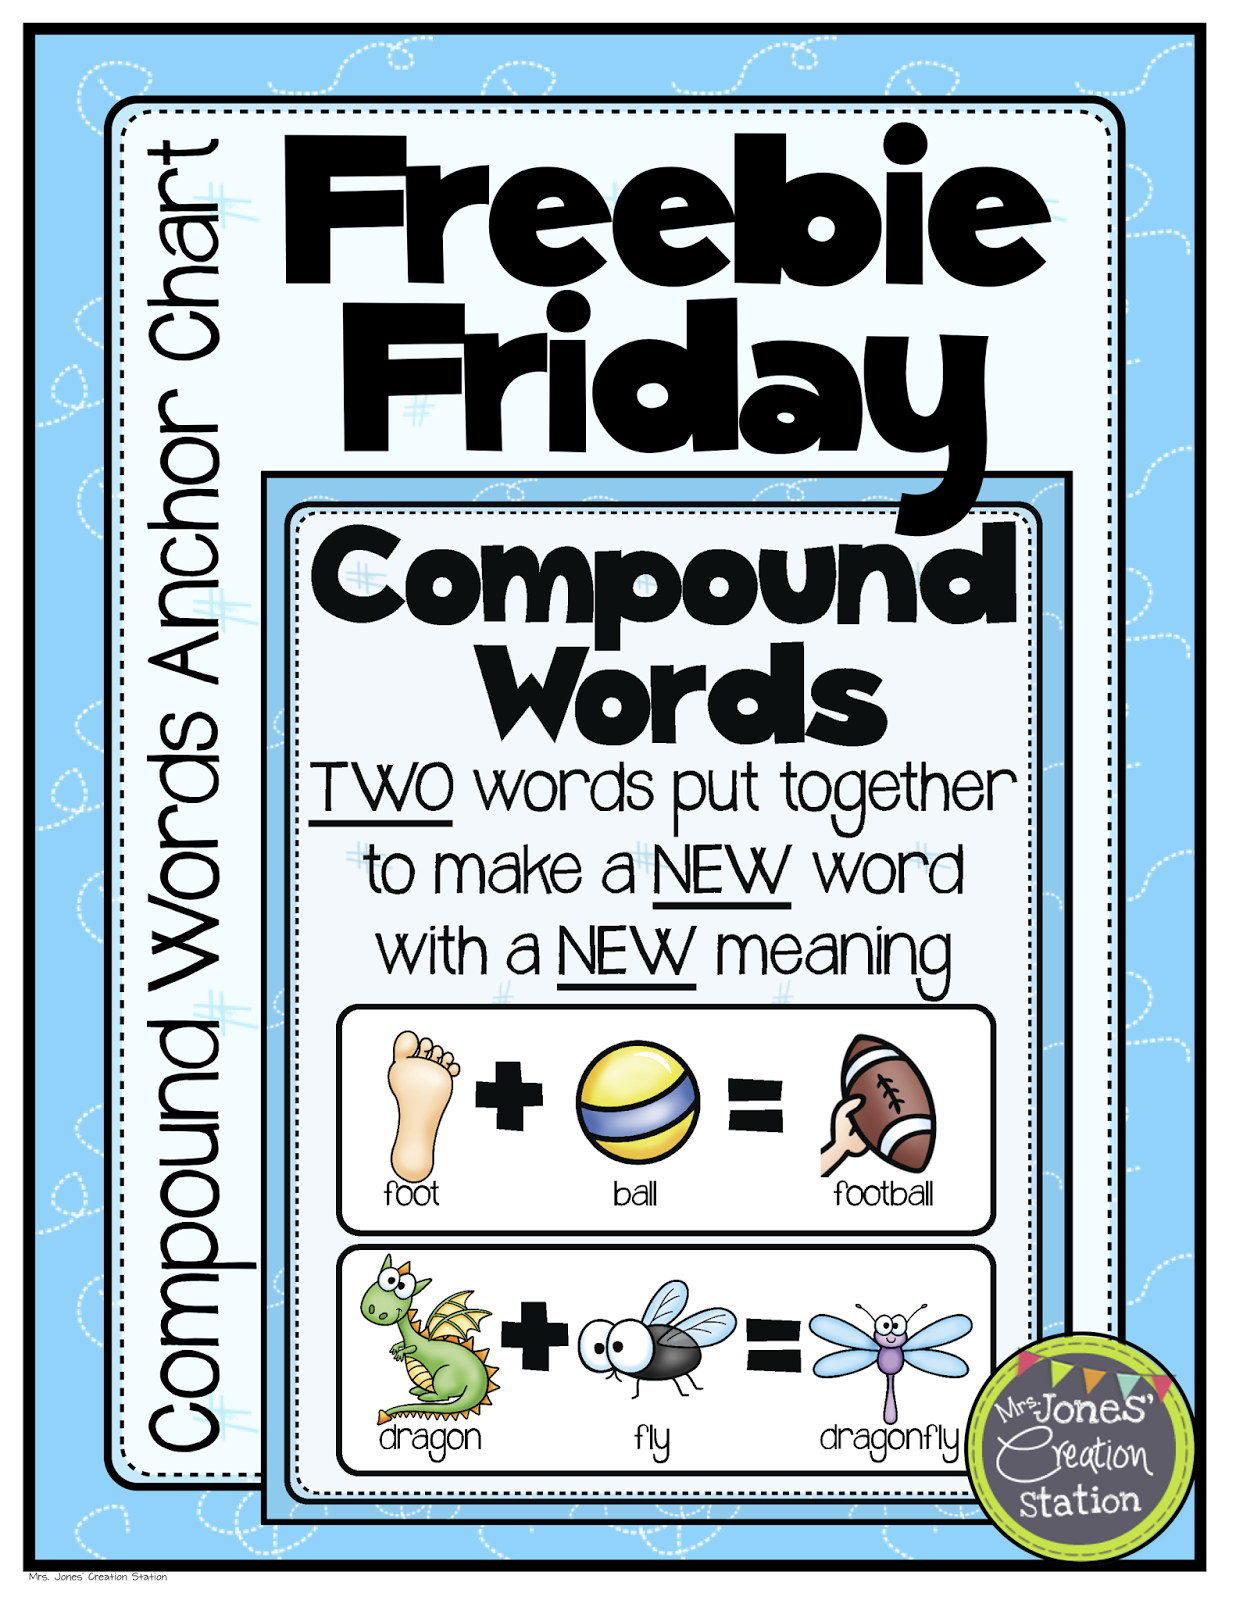 mrs jones creation station freebie friday compound